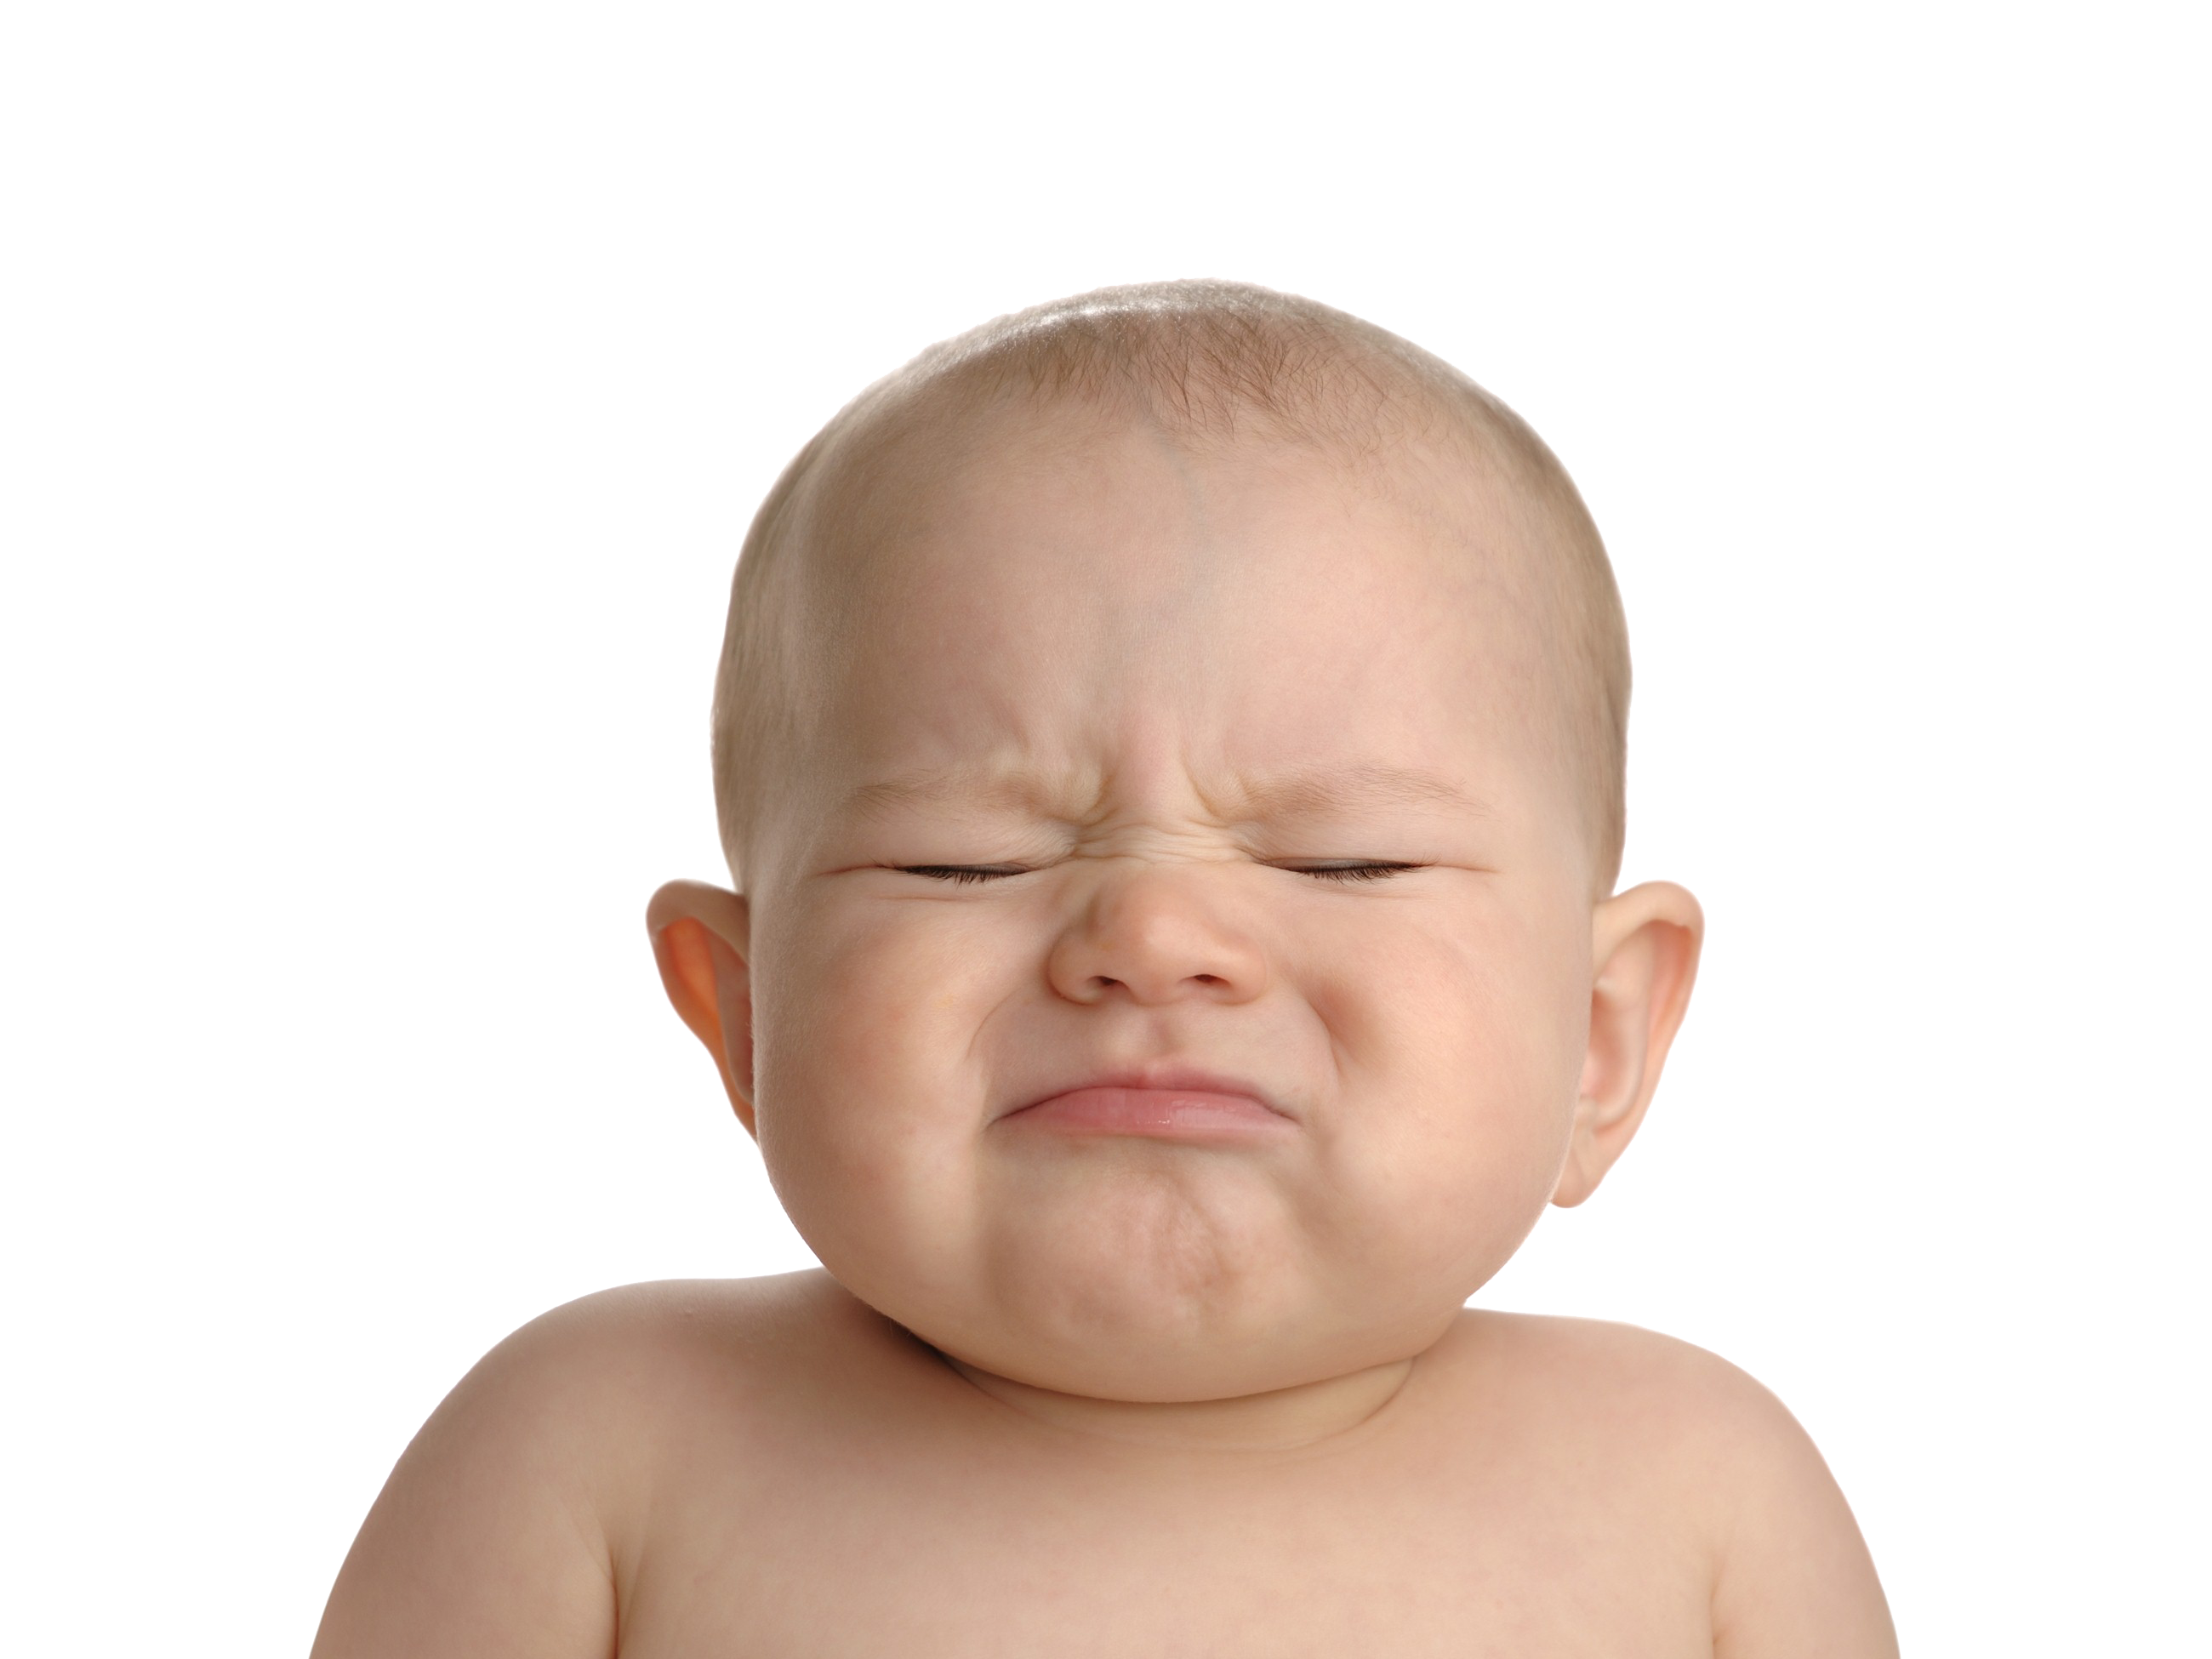 Crying baby png. Image with transparent background